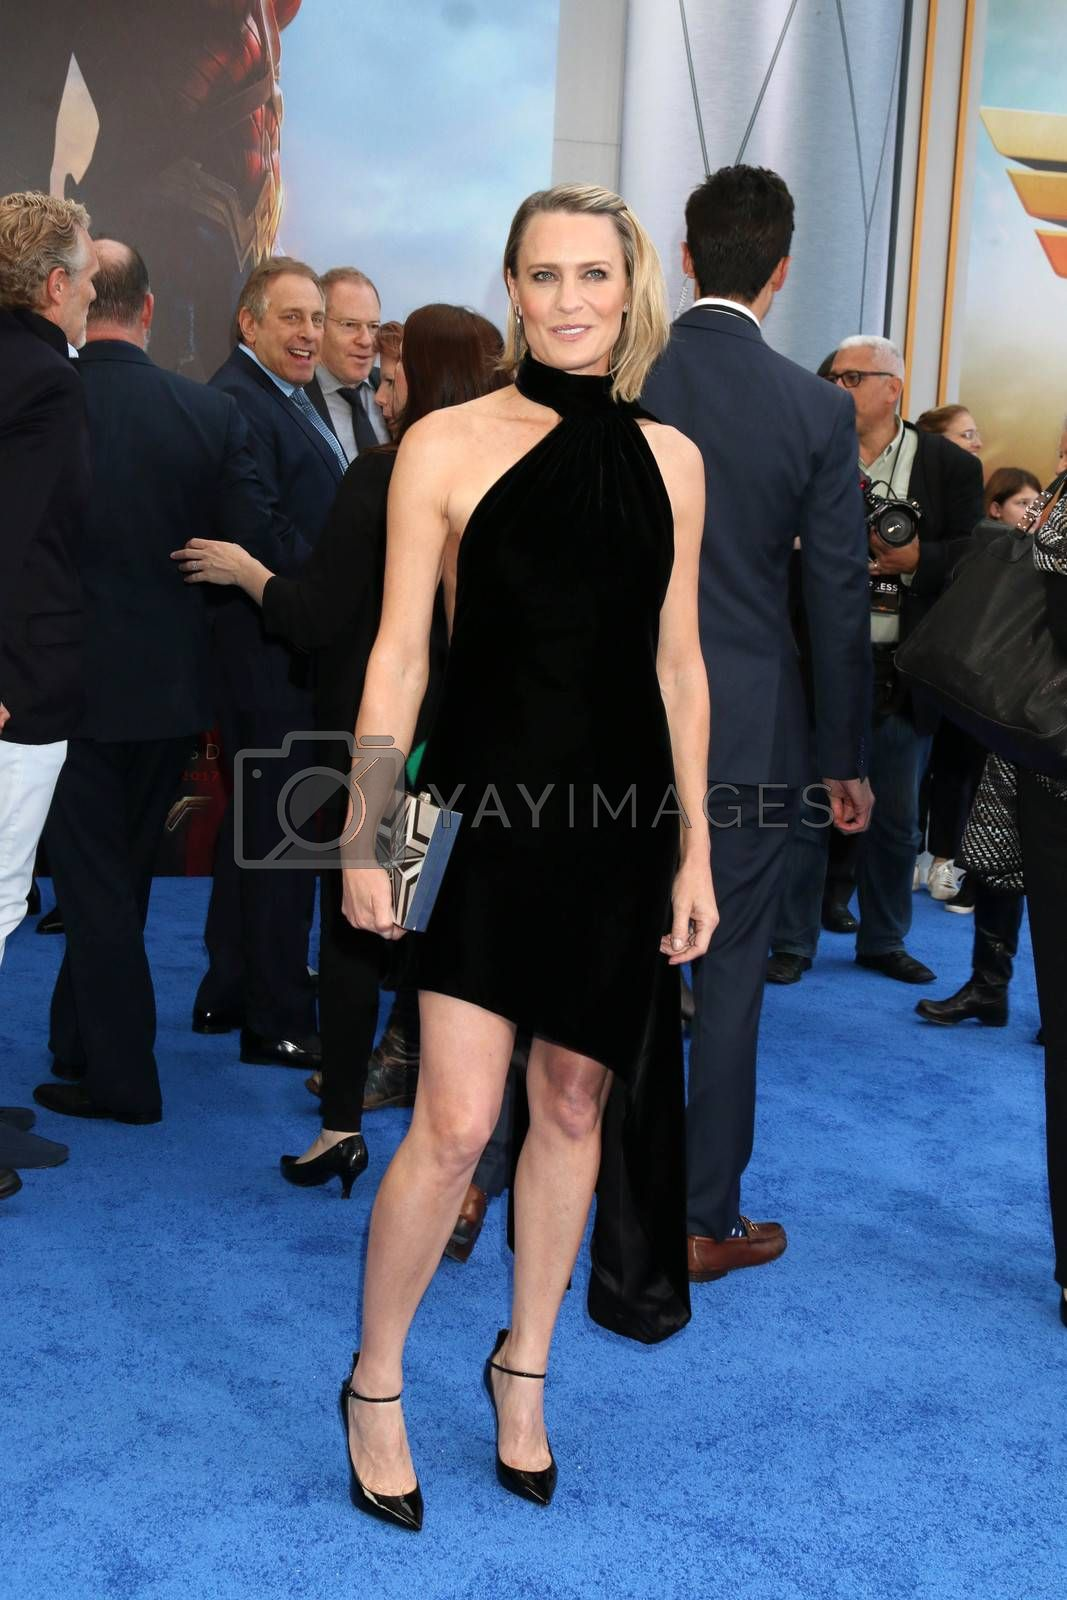 """Robin Wright at the """"Wonder Woman"""" Premiere, Pantages, Hollywood, CA 05-25-17/ImageCollect by ImageCollect"""